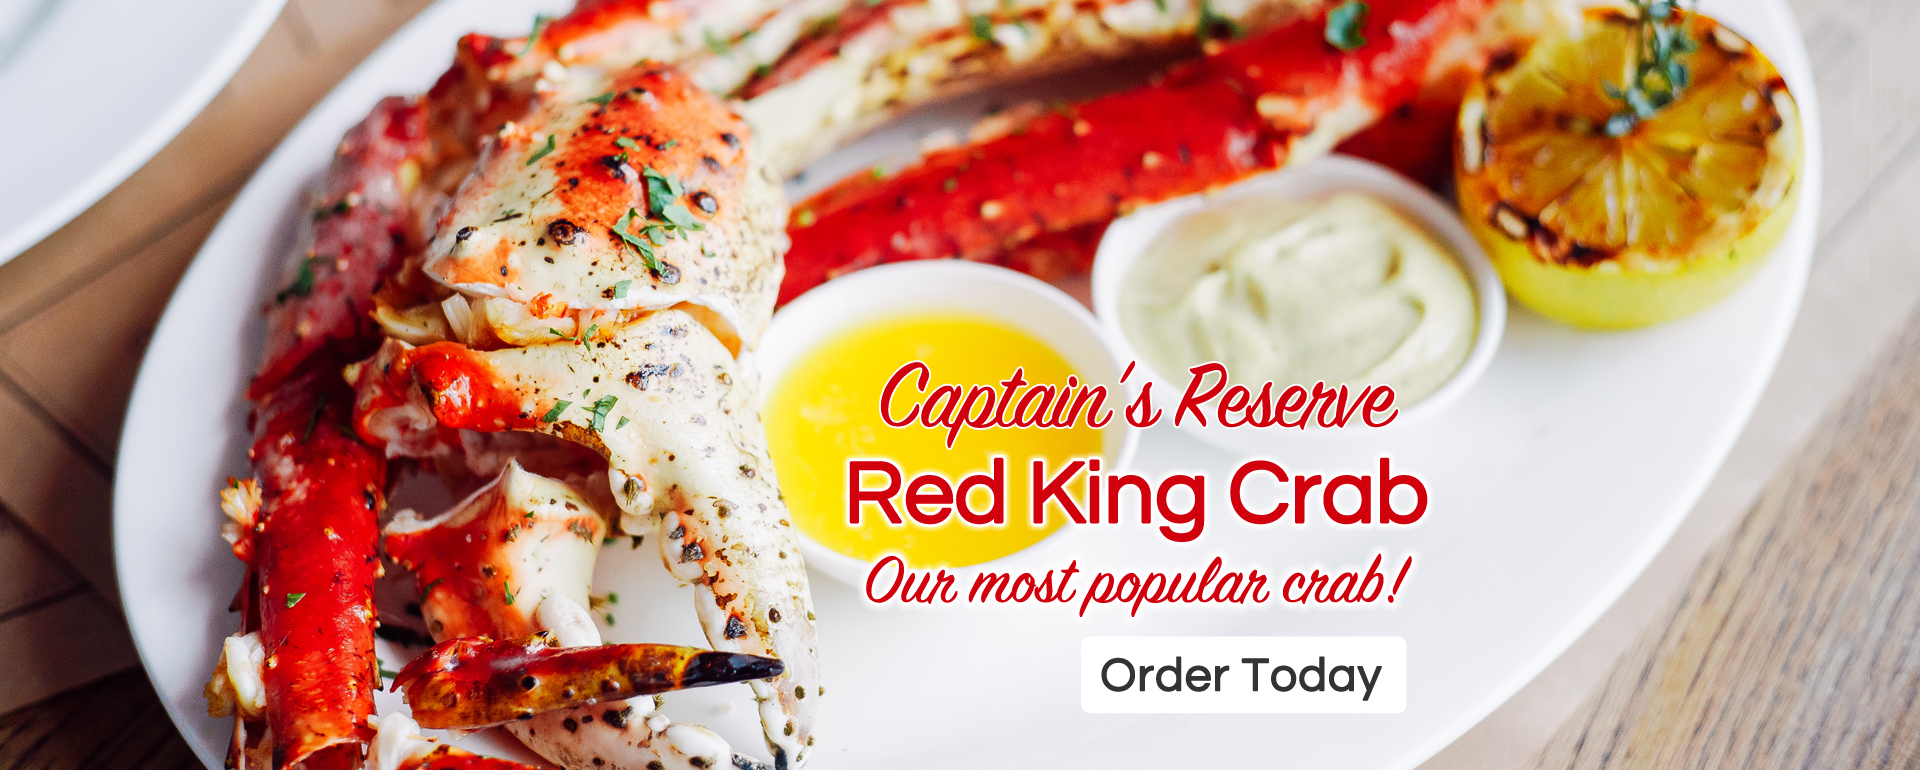 Captains Reserve Red King Crab